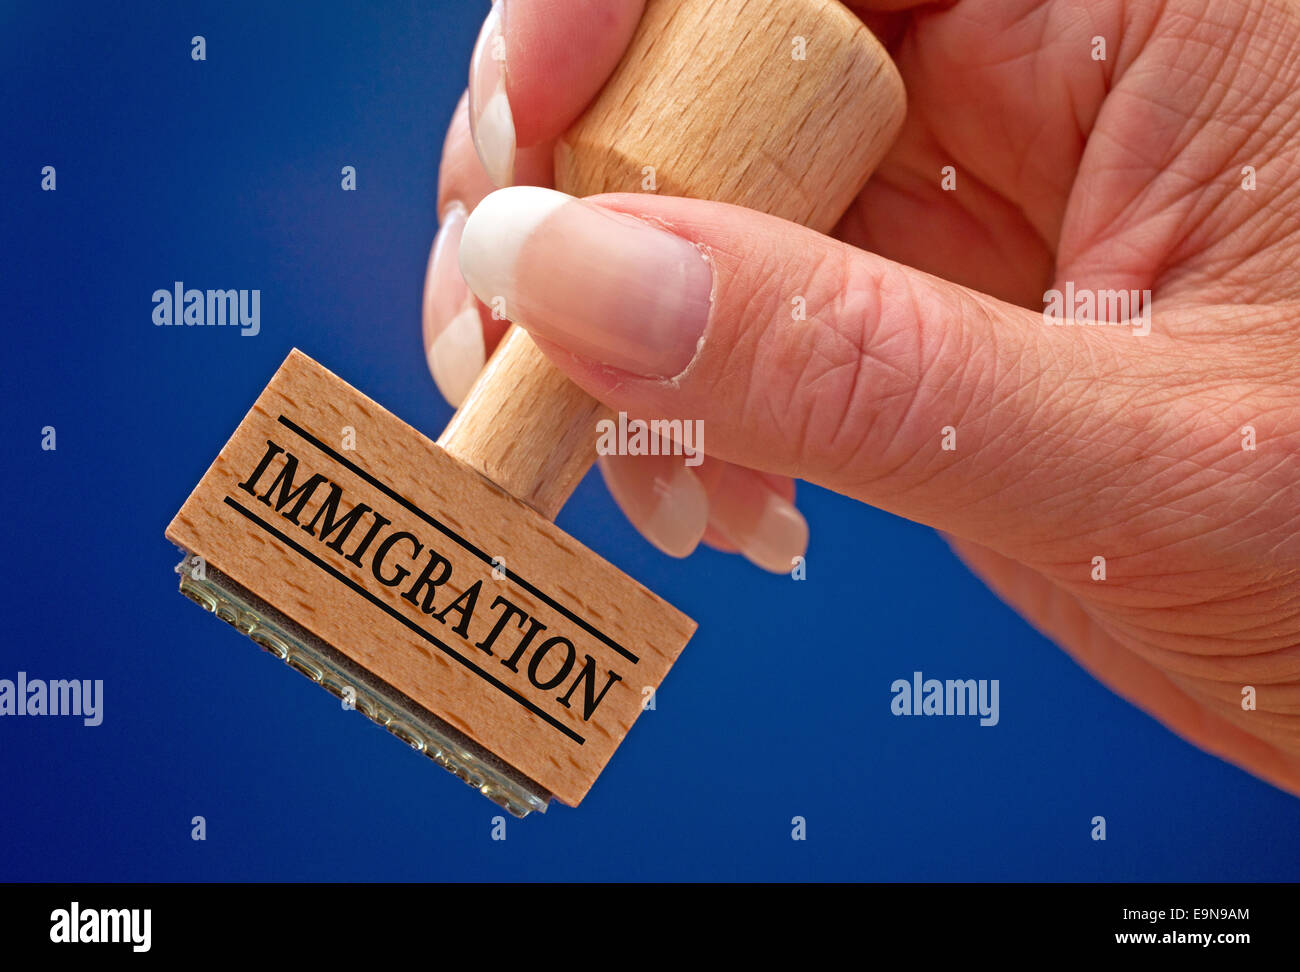 Immigration - Stock Image